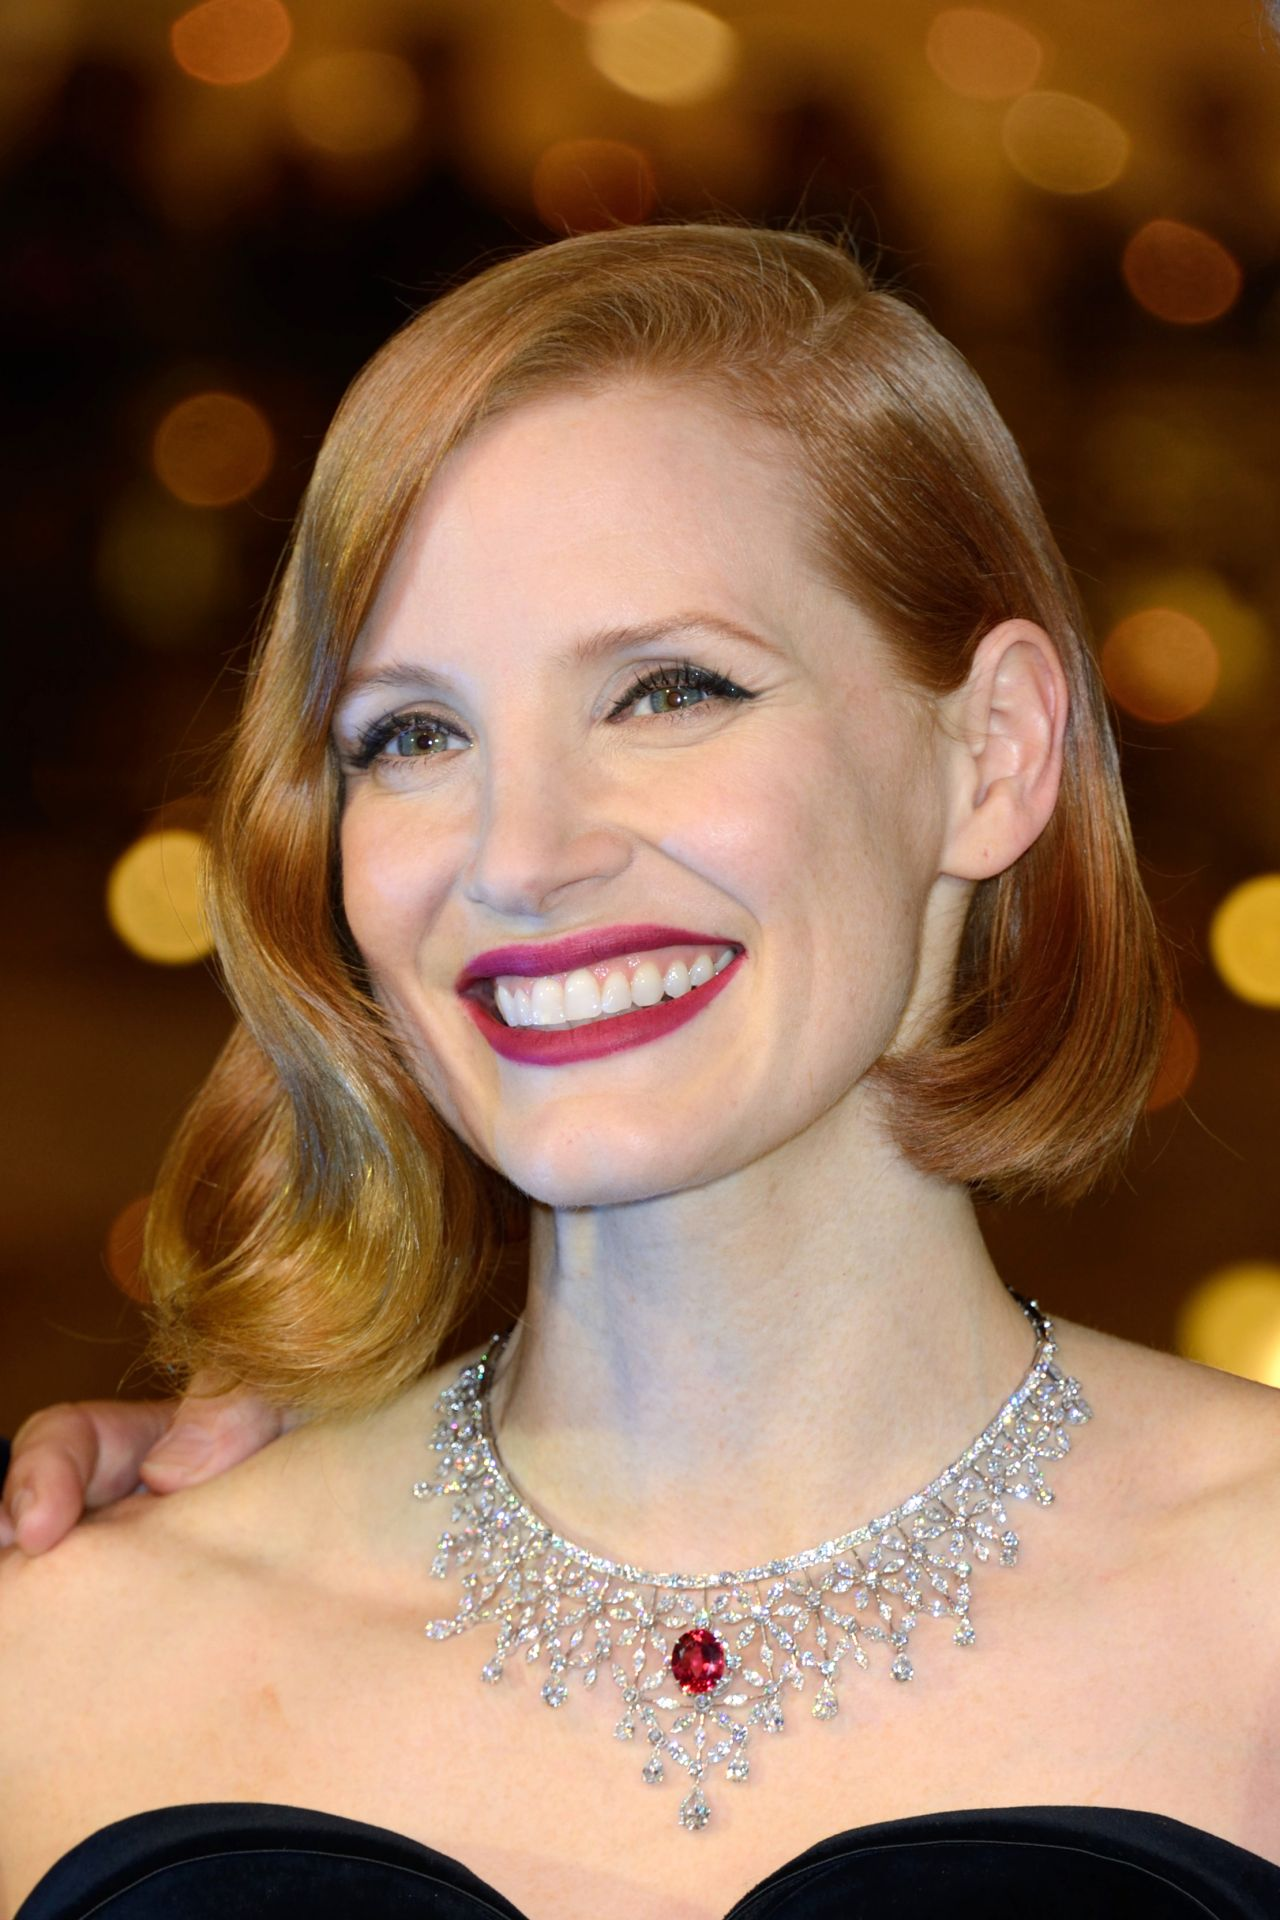 https://celebmafia.com/wp-content/uploads/2018/11/jessica-chastain-at-the-les-galeries-lafayette-christmas-decorations-inauguration-in-paris-11-07-2018-2.jpg